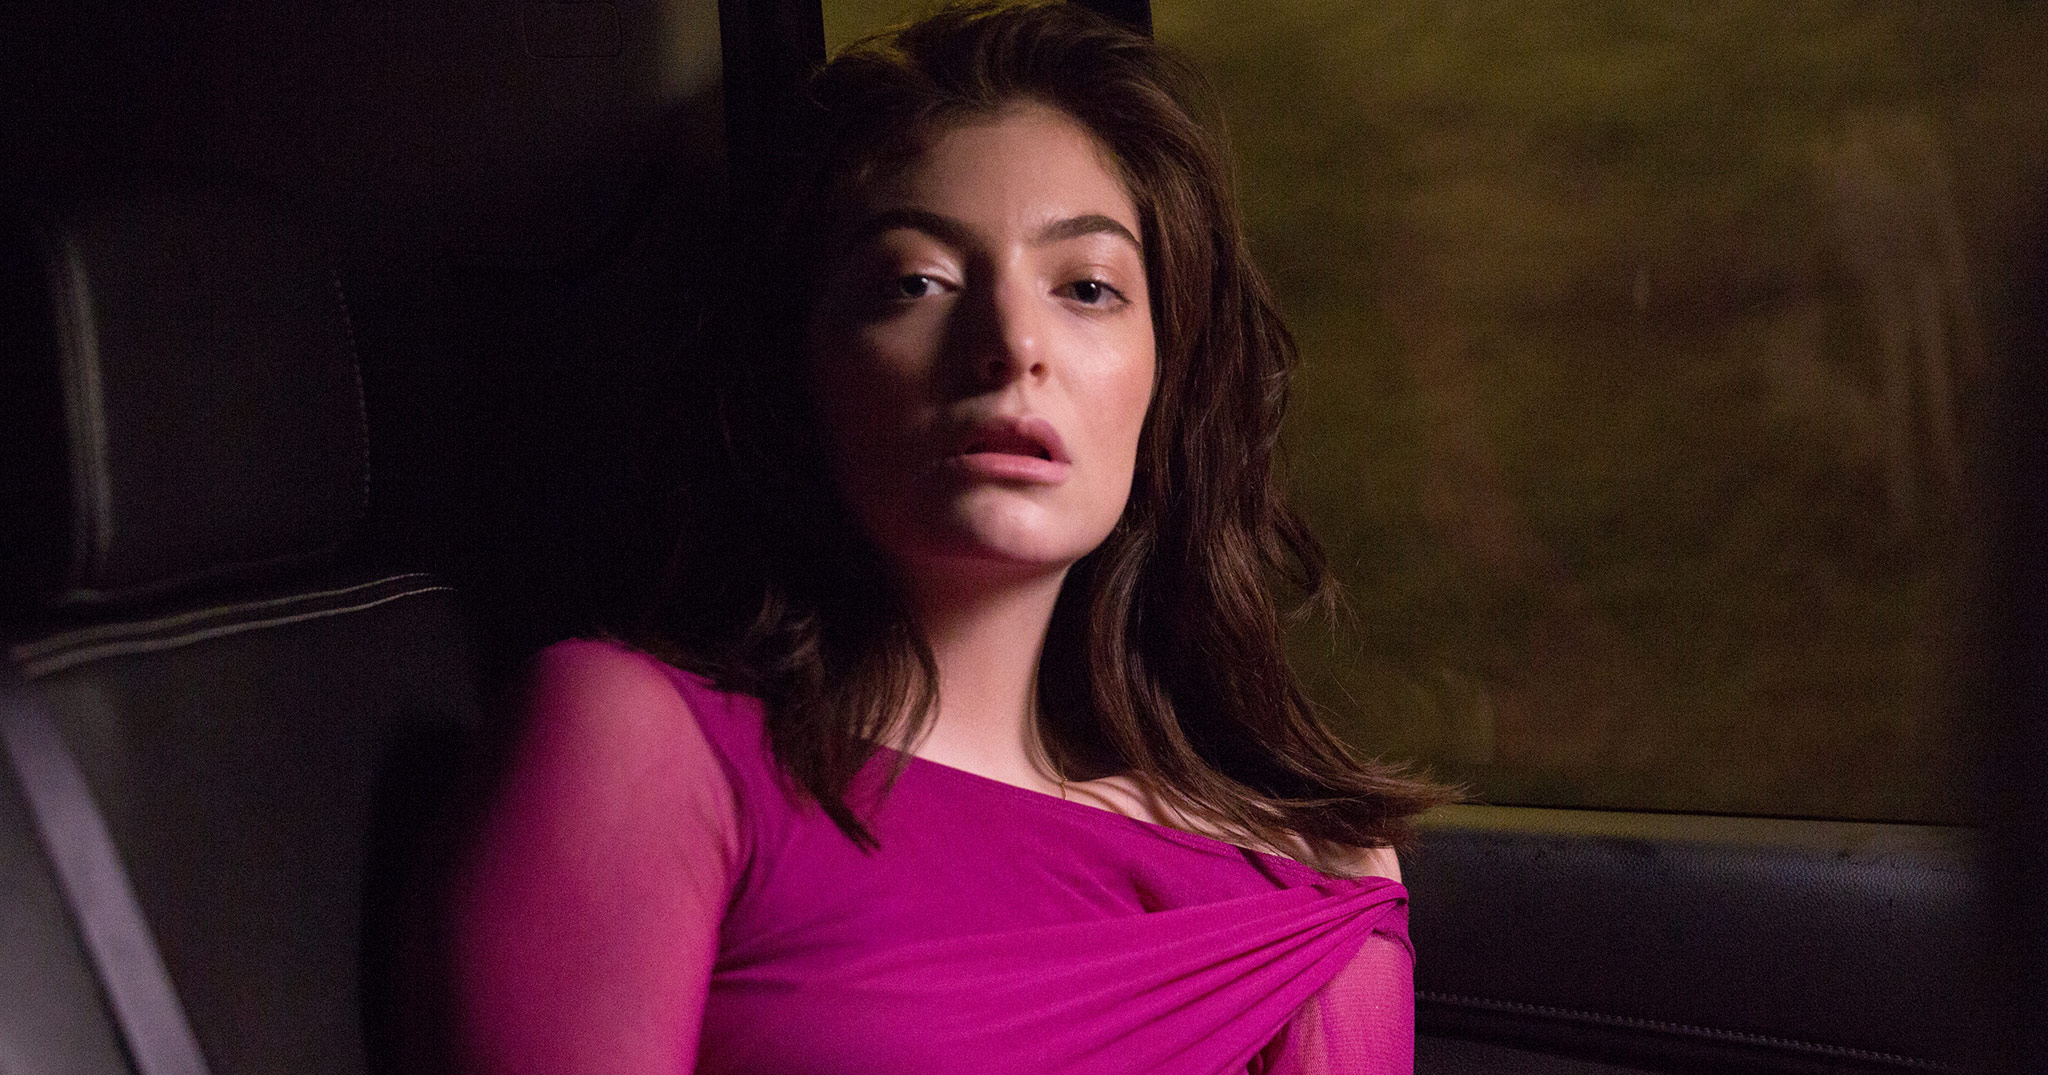 Lorde Promotional Image